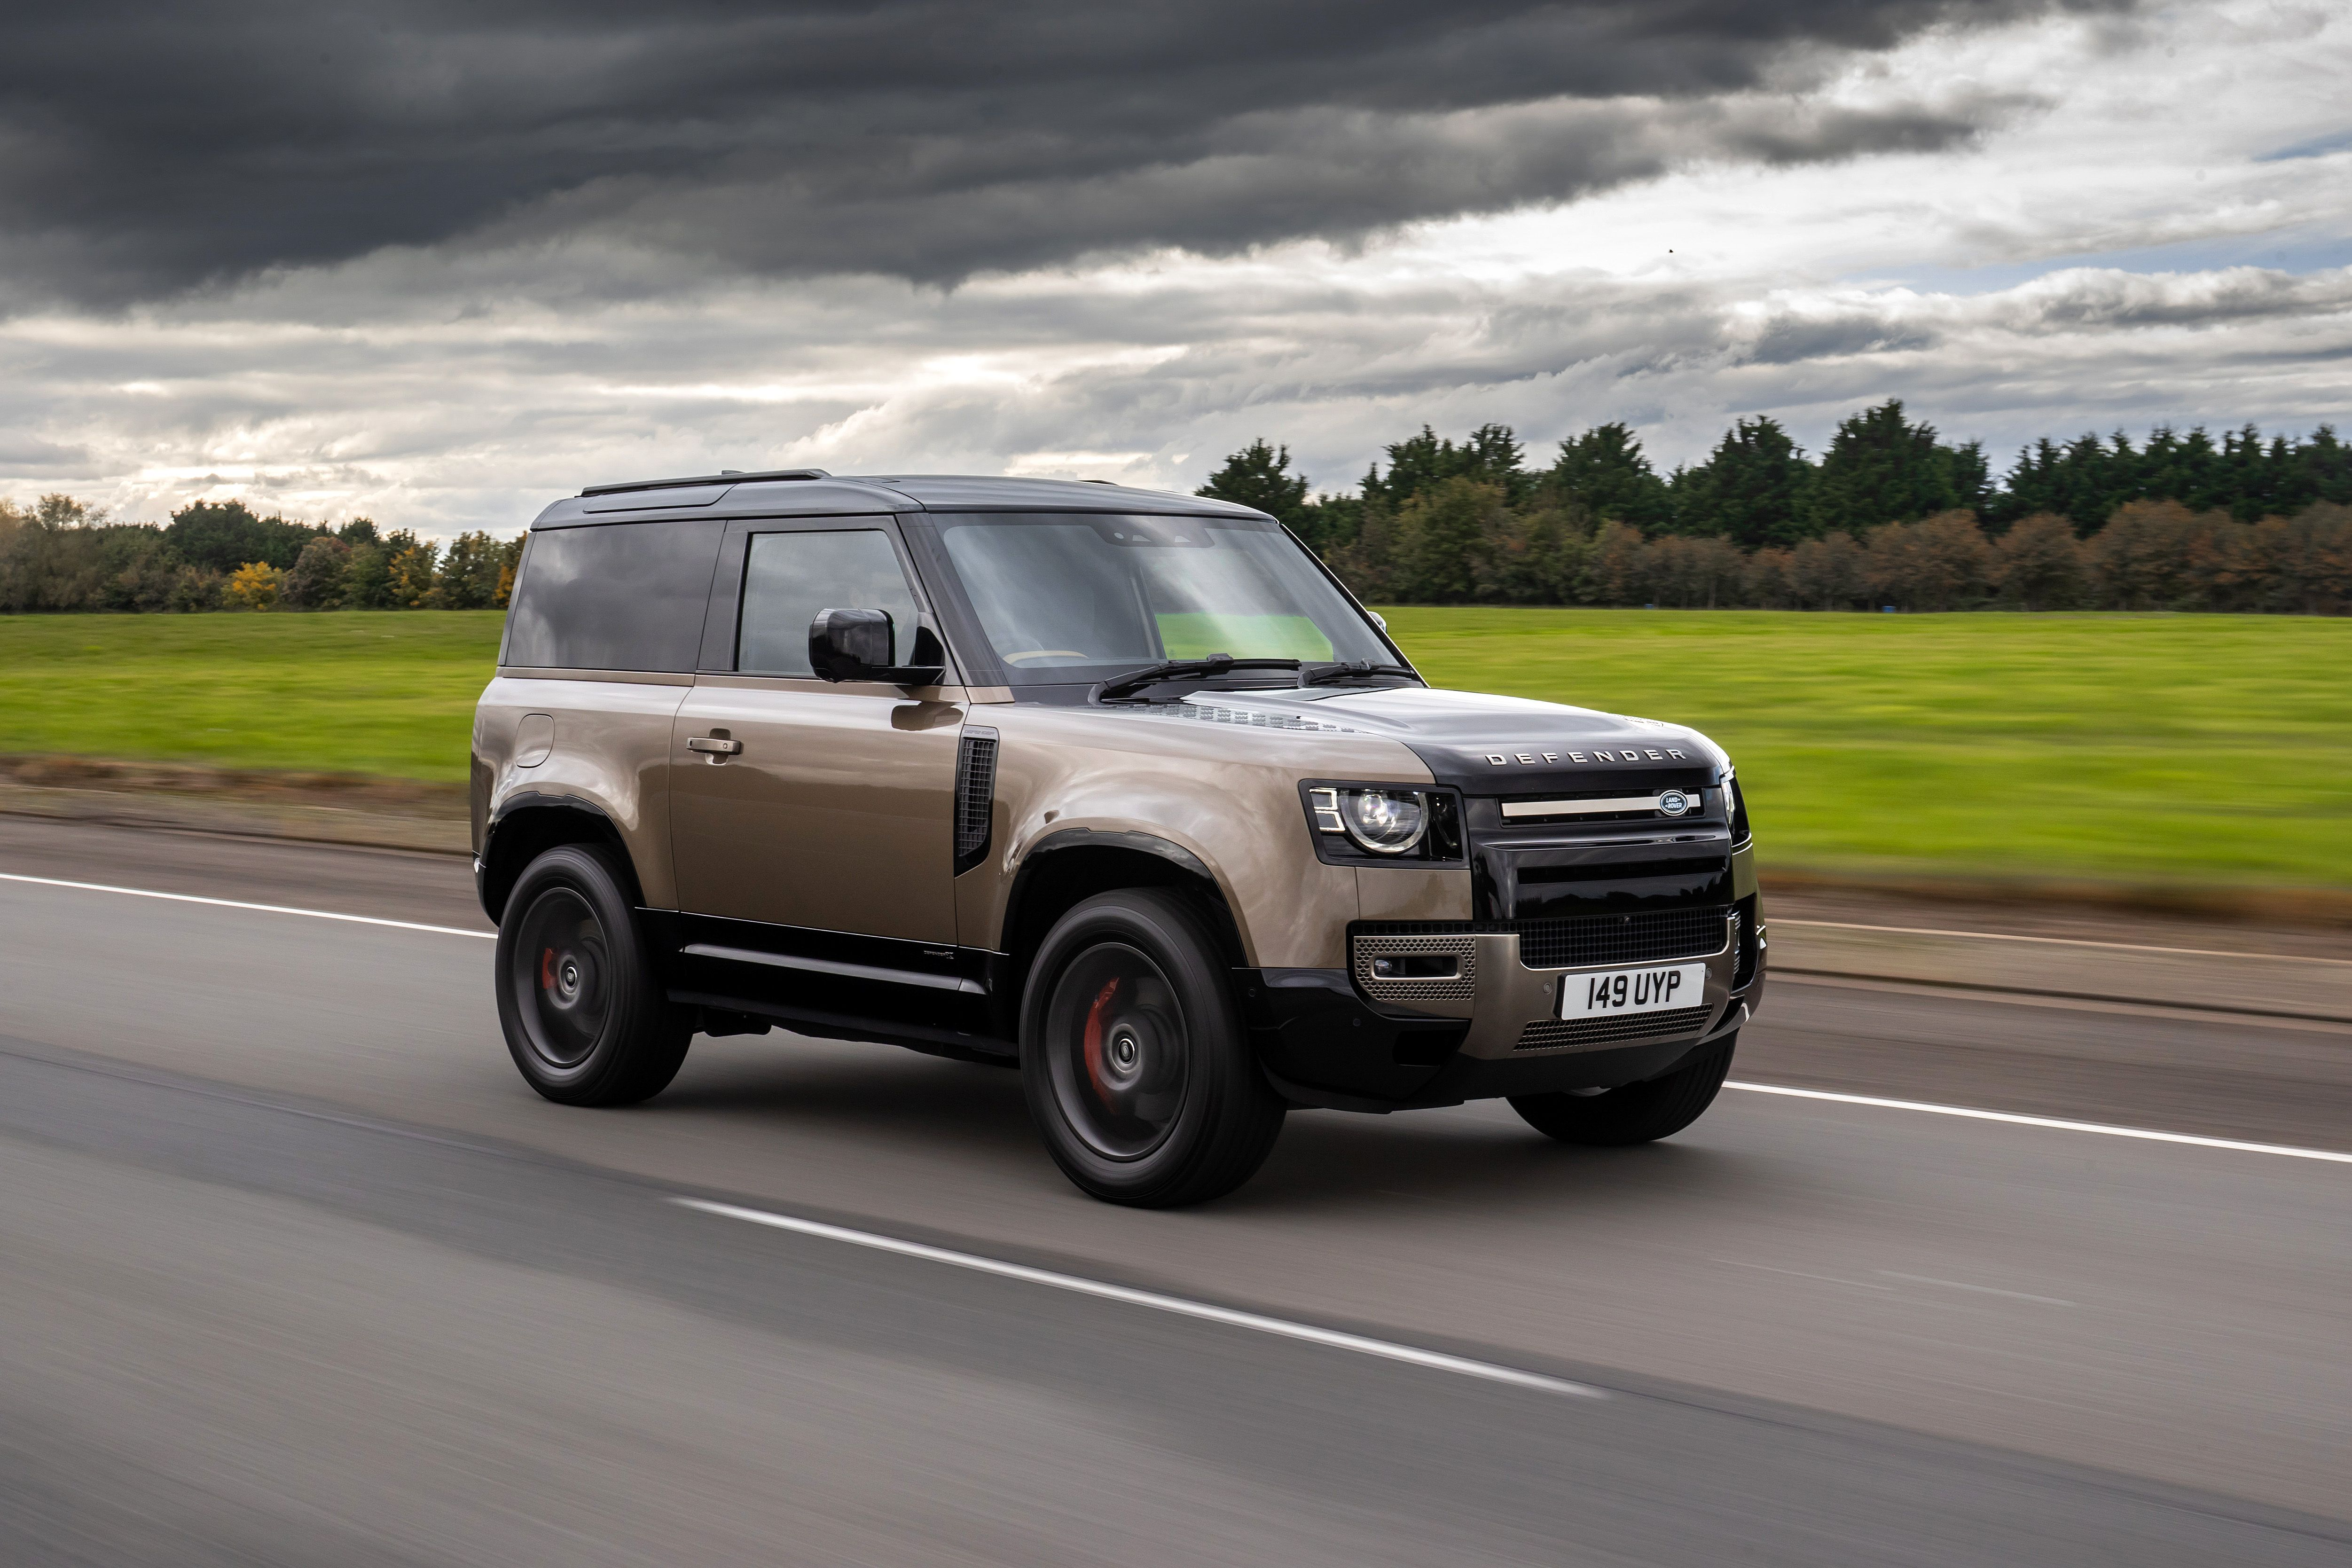 2021 Land Rover Defender 90 Puts the Defender In its ...